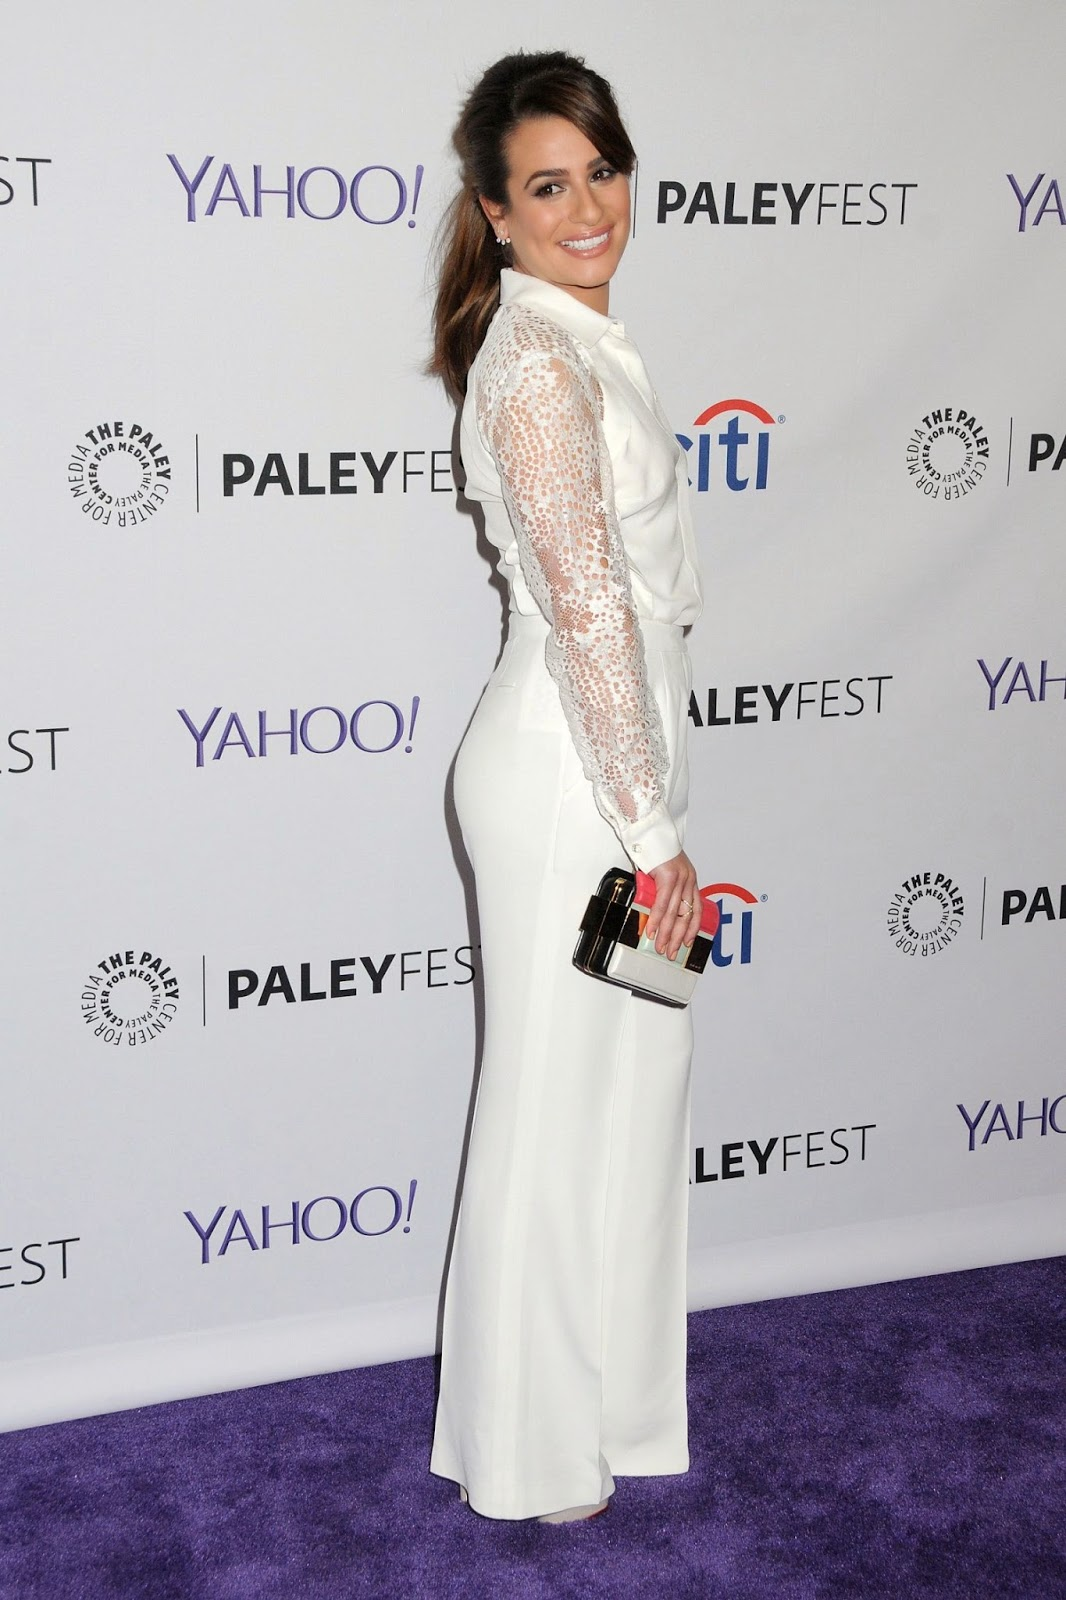 Actress @ Lea Michele at The Paley Center Glee Event for Paleyfest in Hollywood